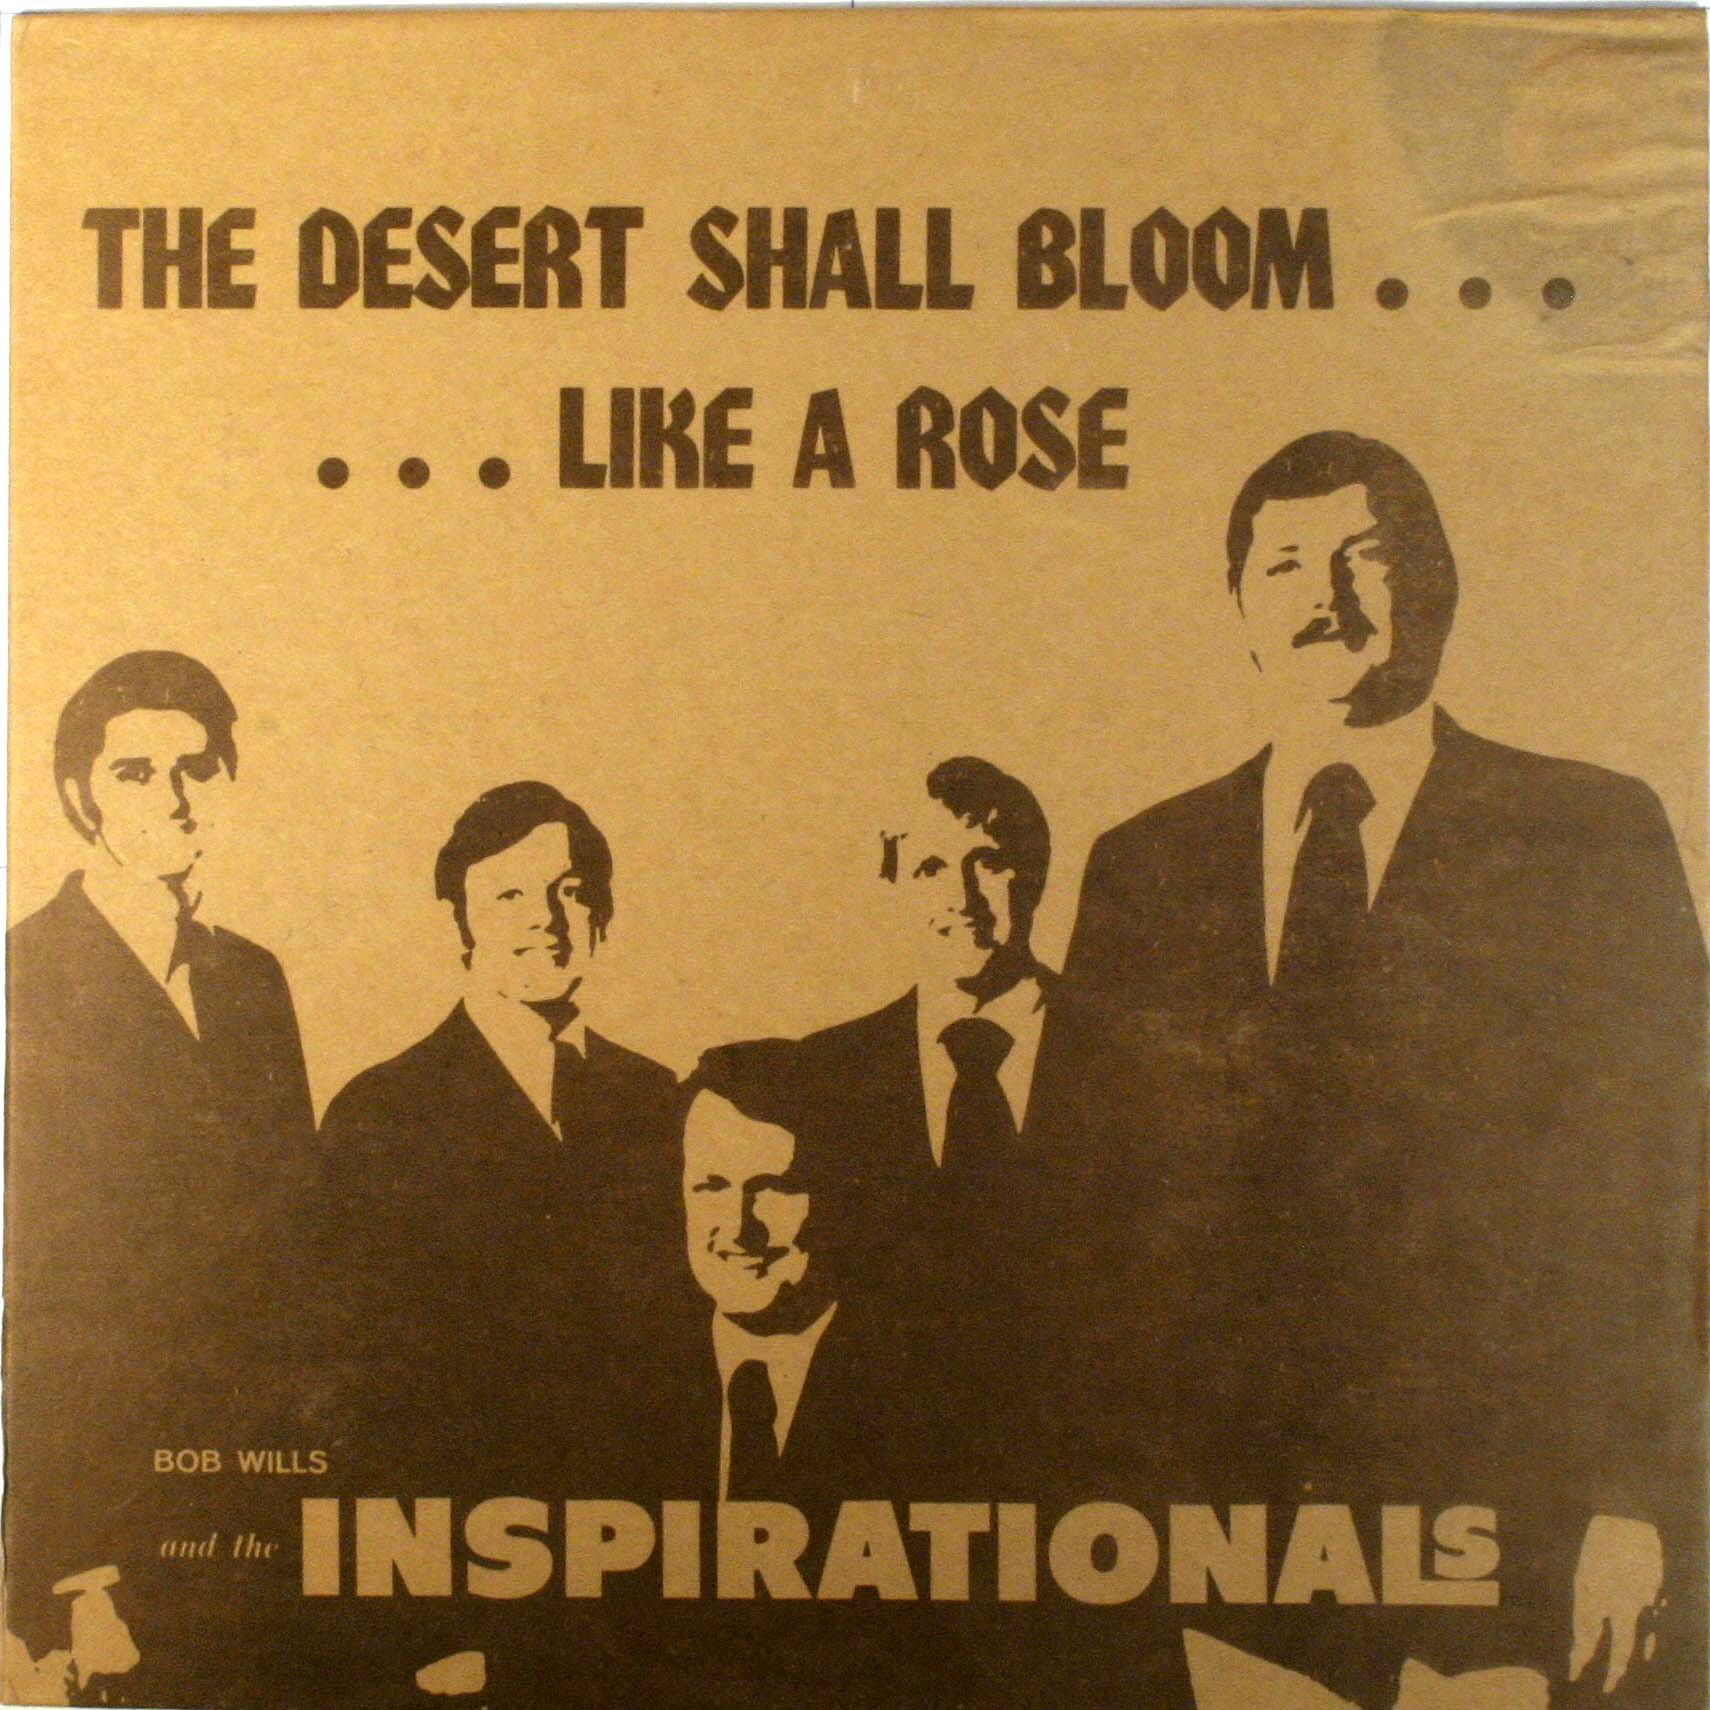 The Desert Shall Bloom Like A Rose